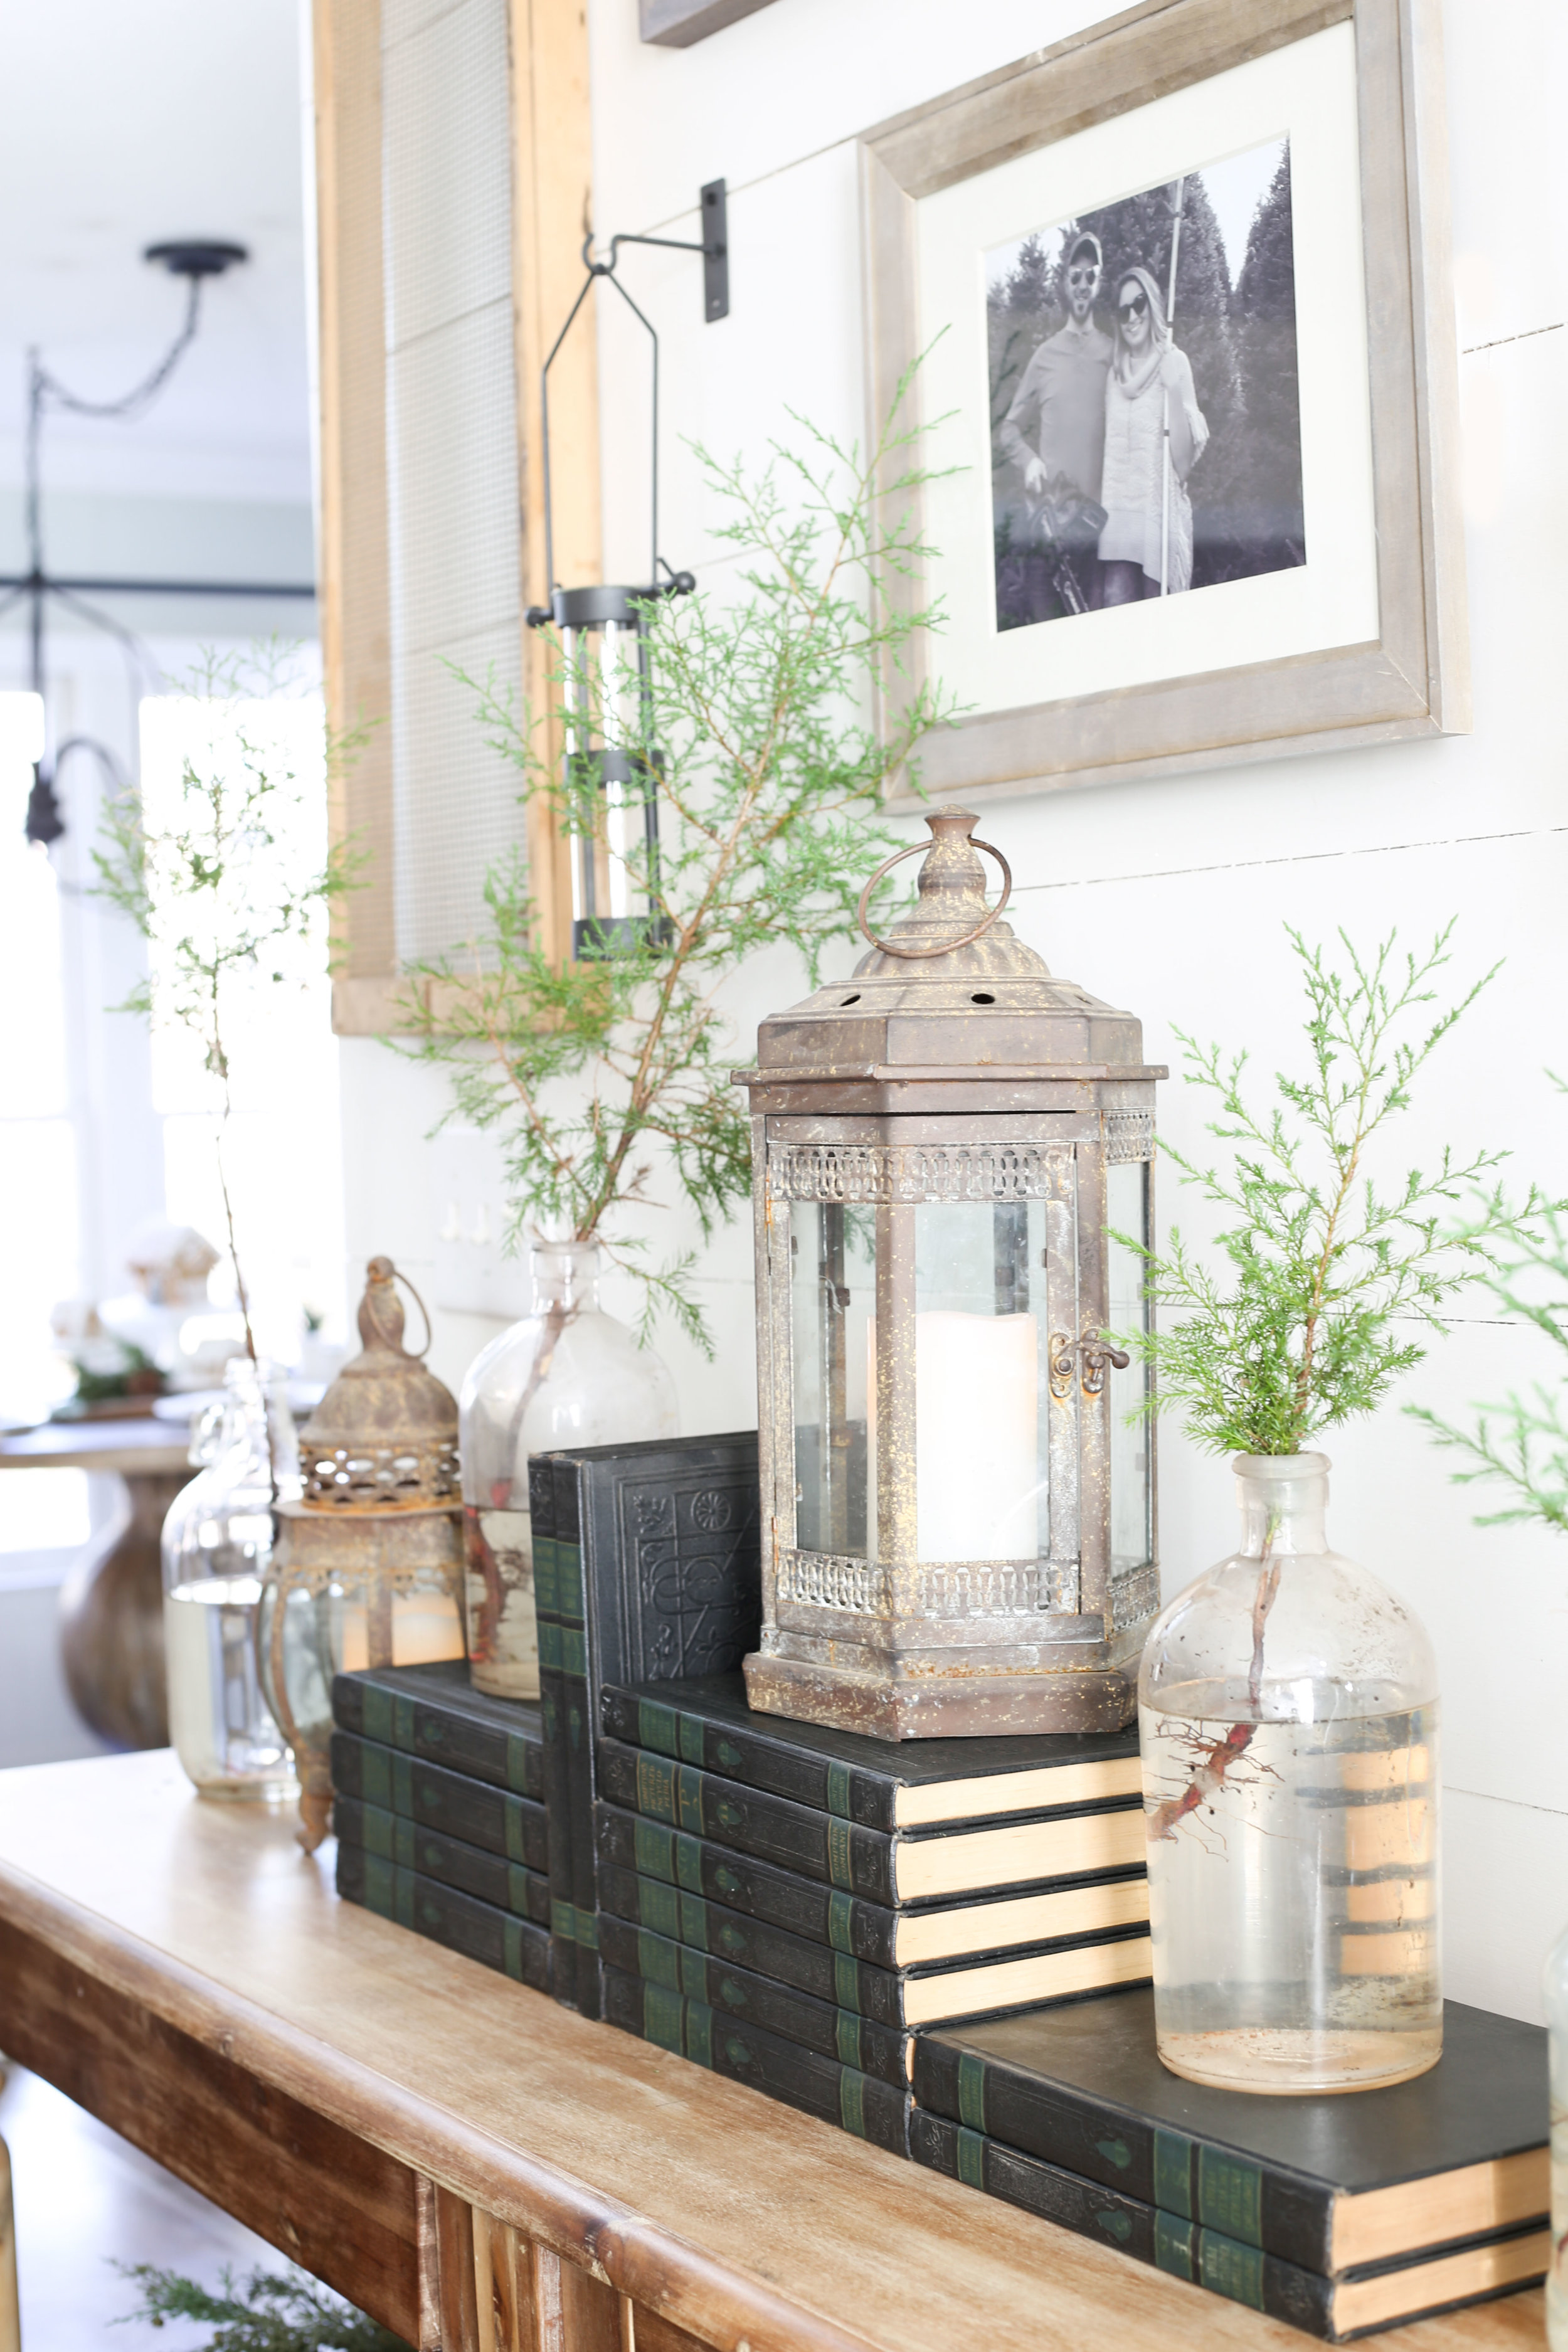 Christmas 2017 Home Tour: Deck The Blogs- Console with Gallery Wall- Plum Pretty Decor & Design's Christmas Home Tour